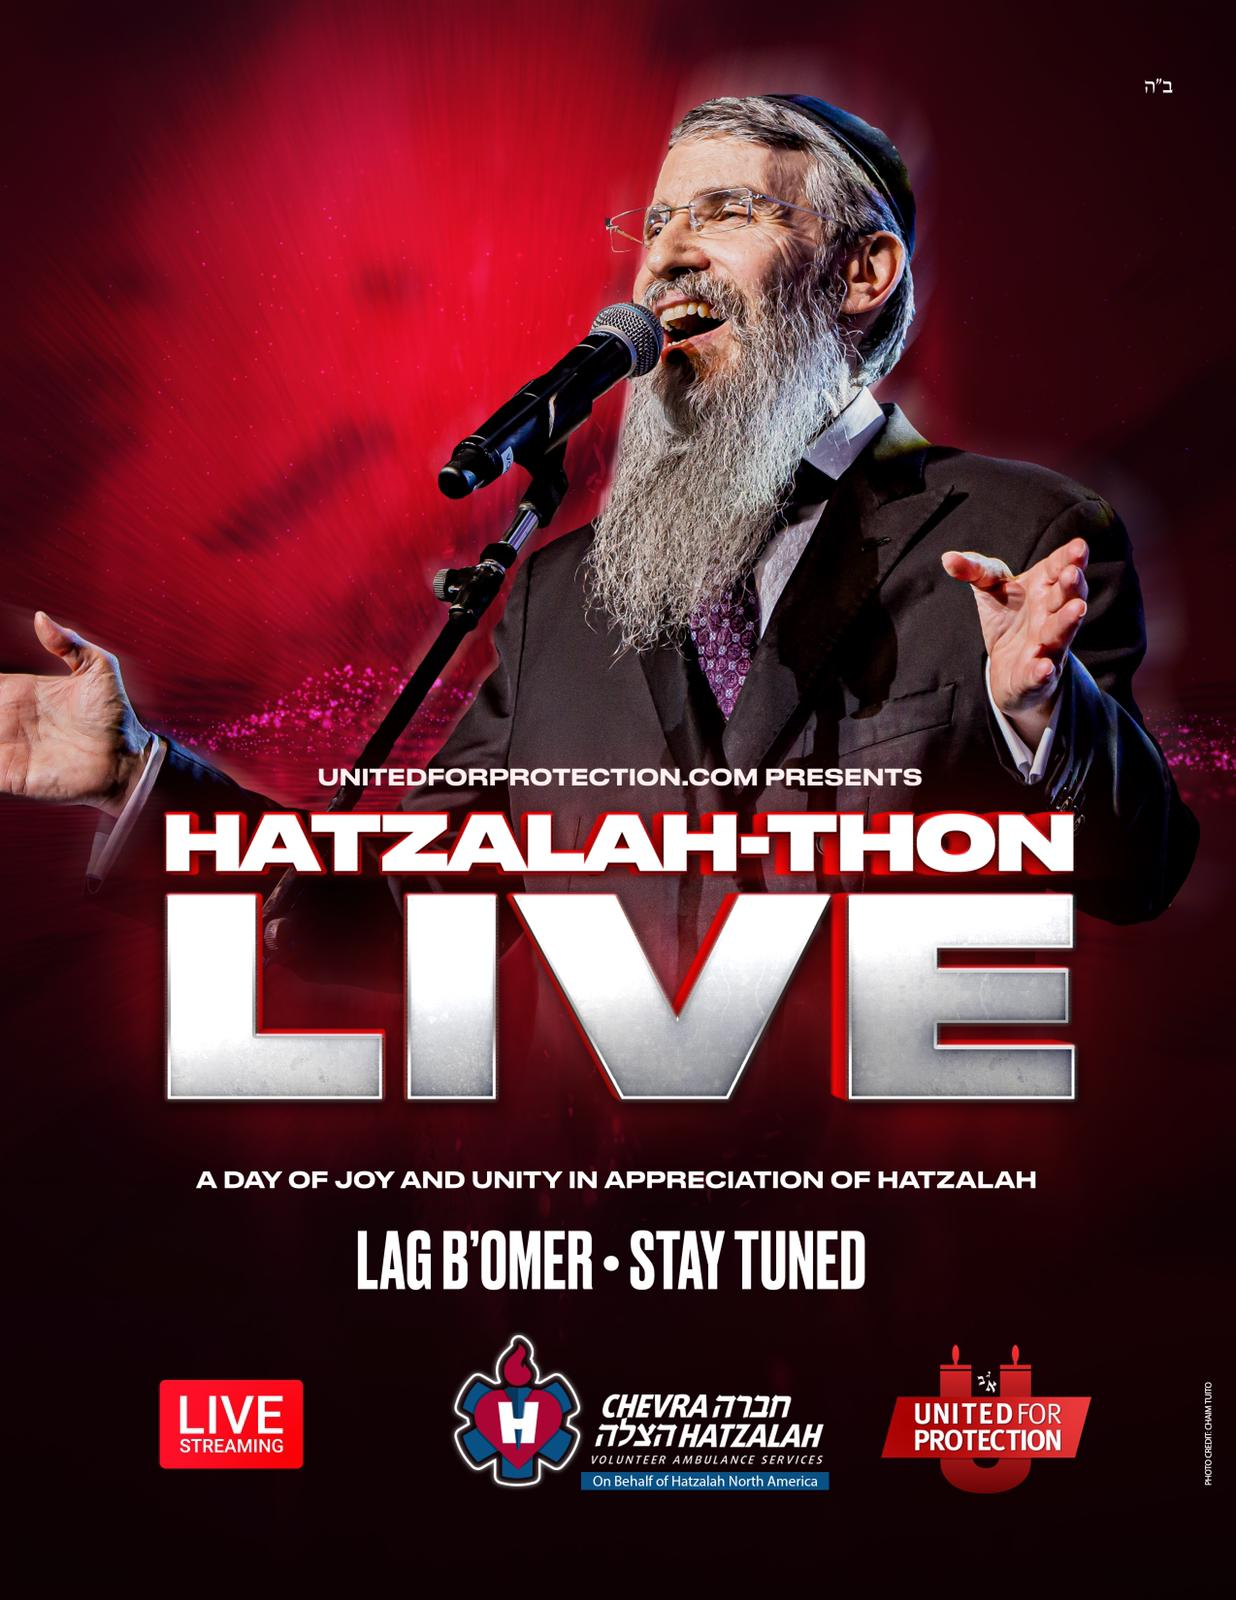 UnitedForProtection.com Presents Hatzalah-Thon Live on Lag B'Omer 1